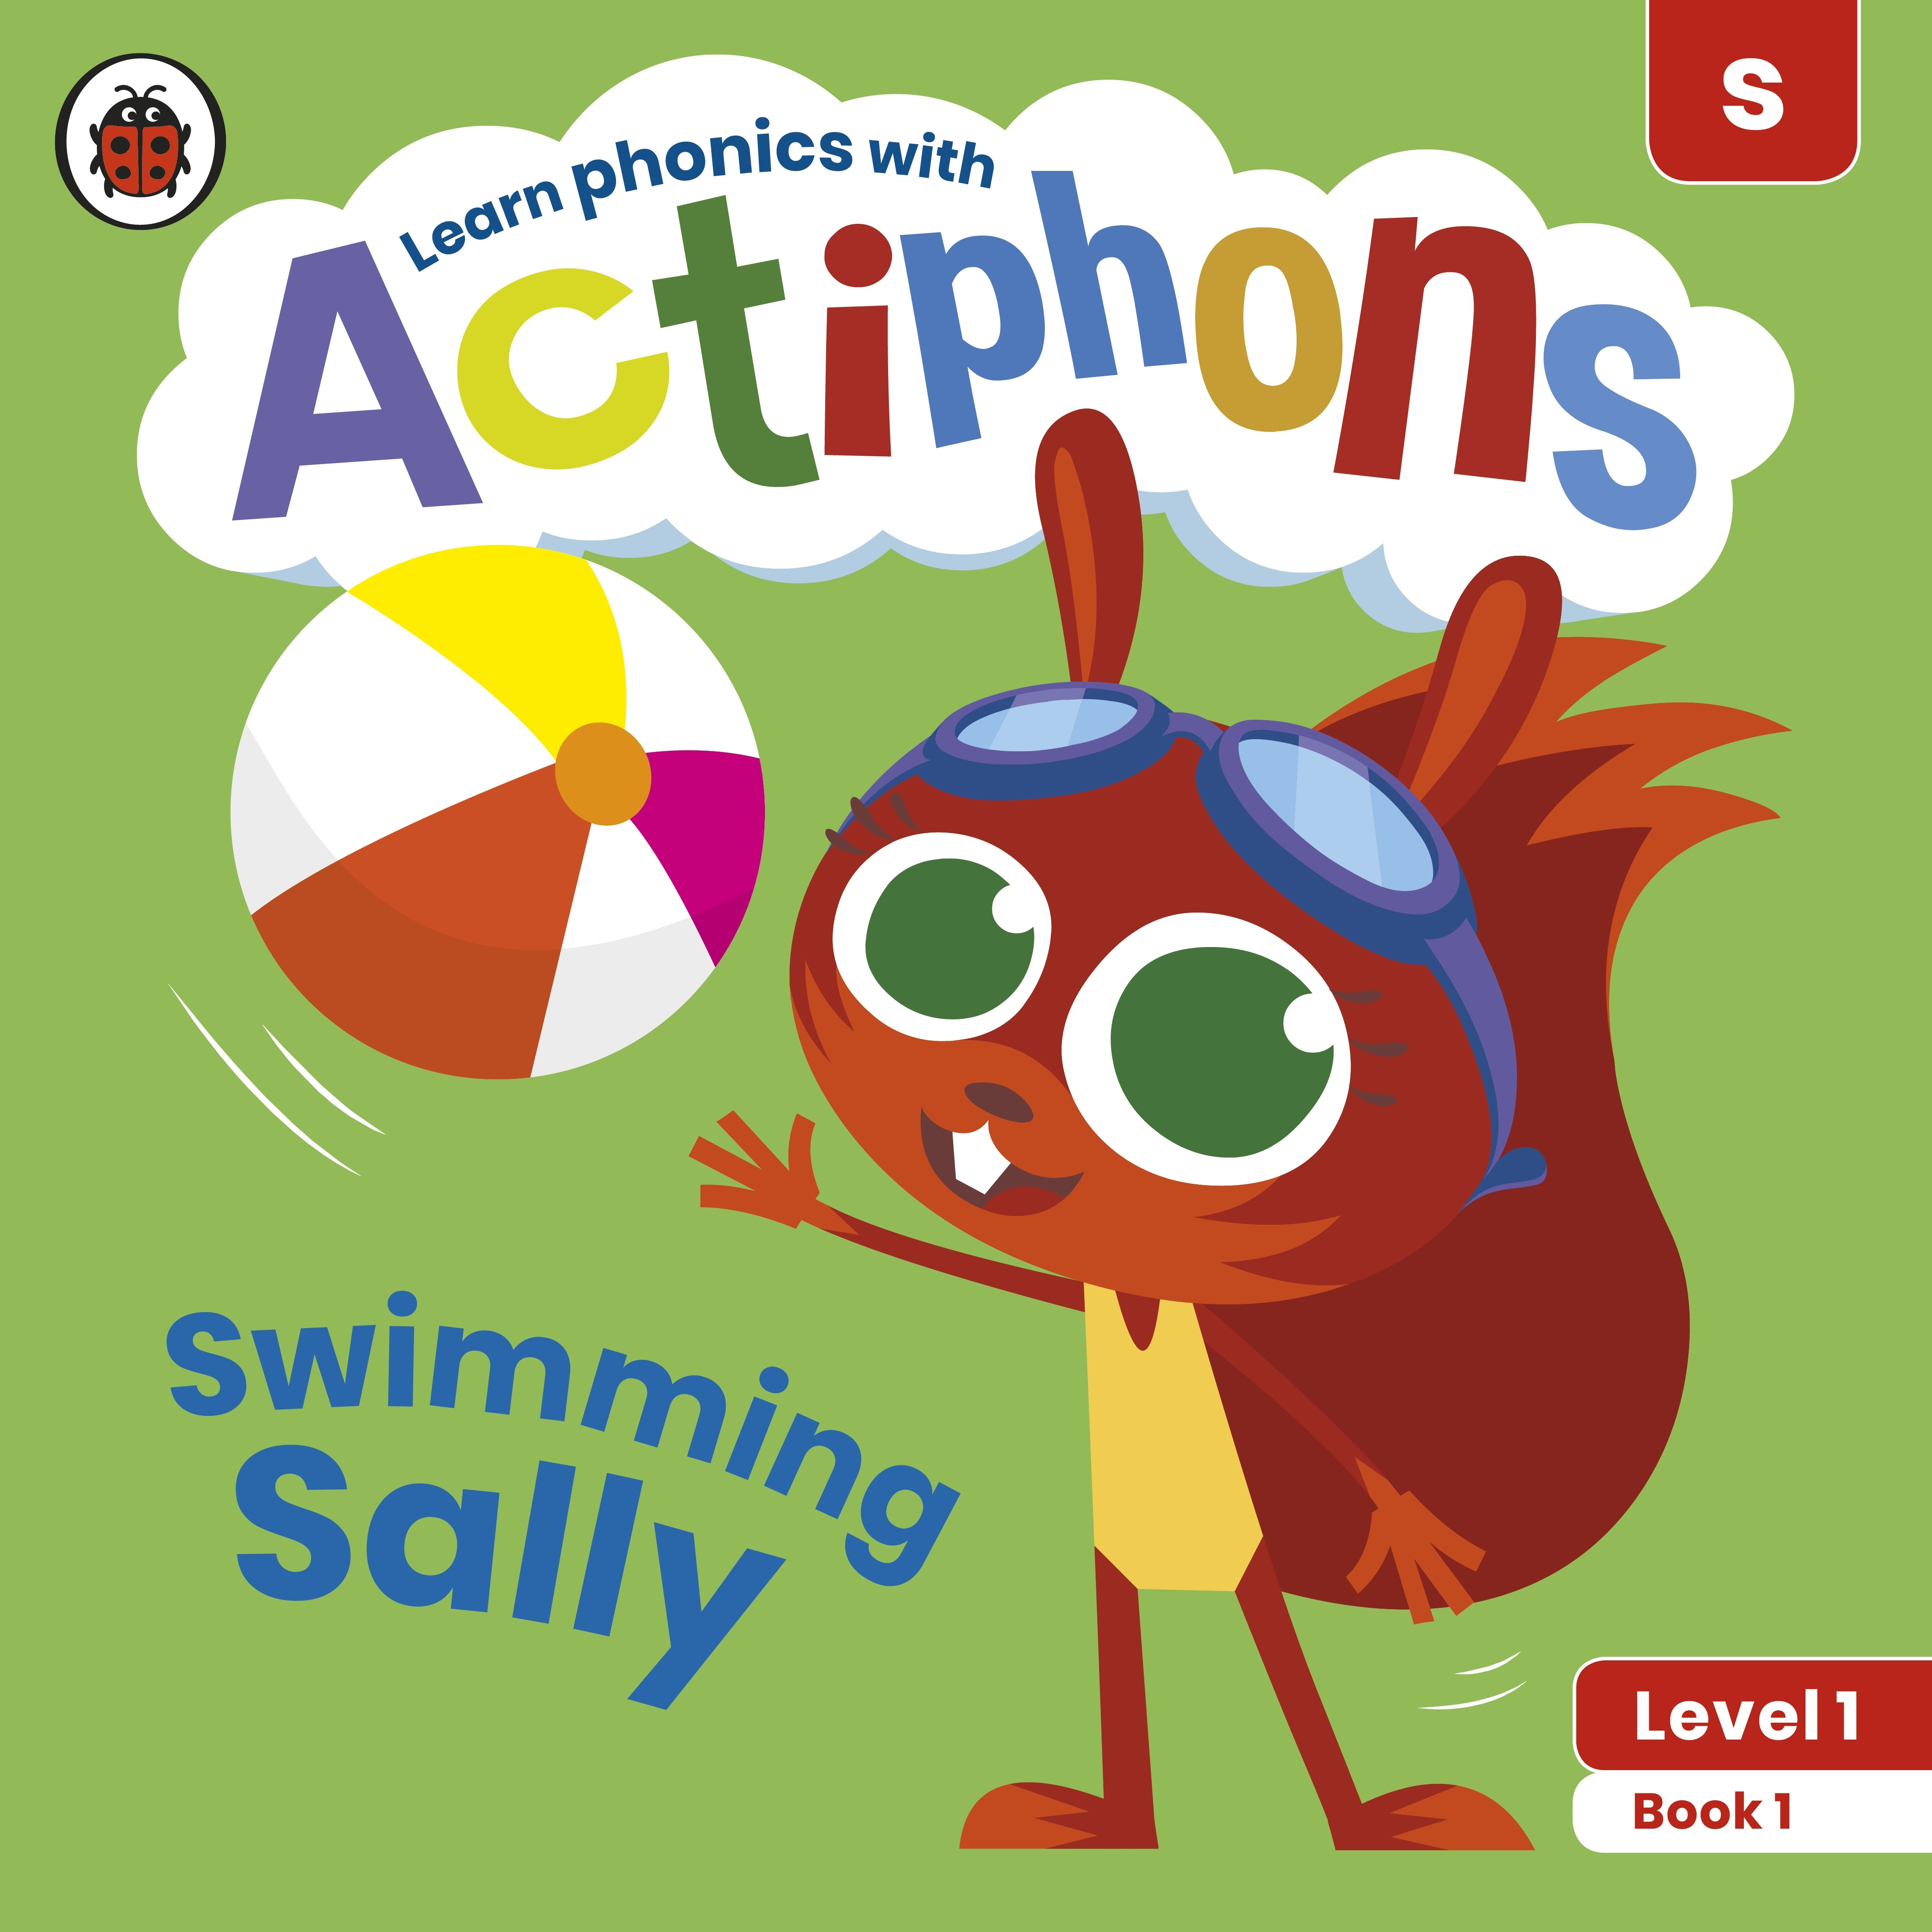 Actiphons Level 1 Book 1 Swimming Sally